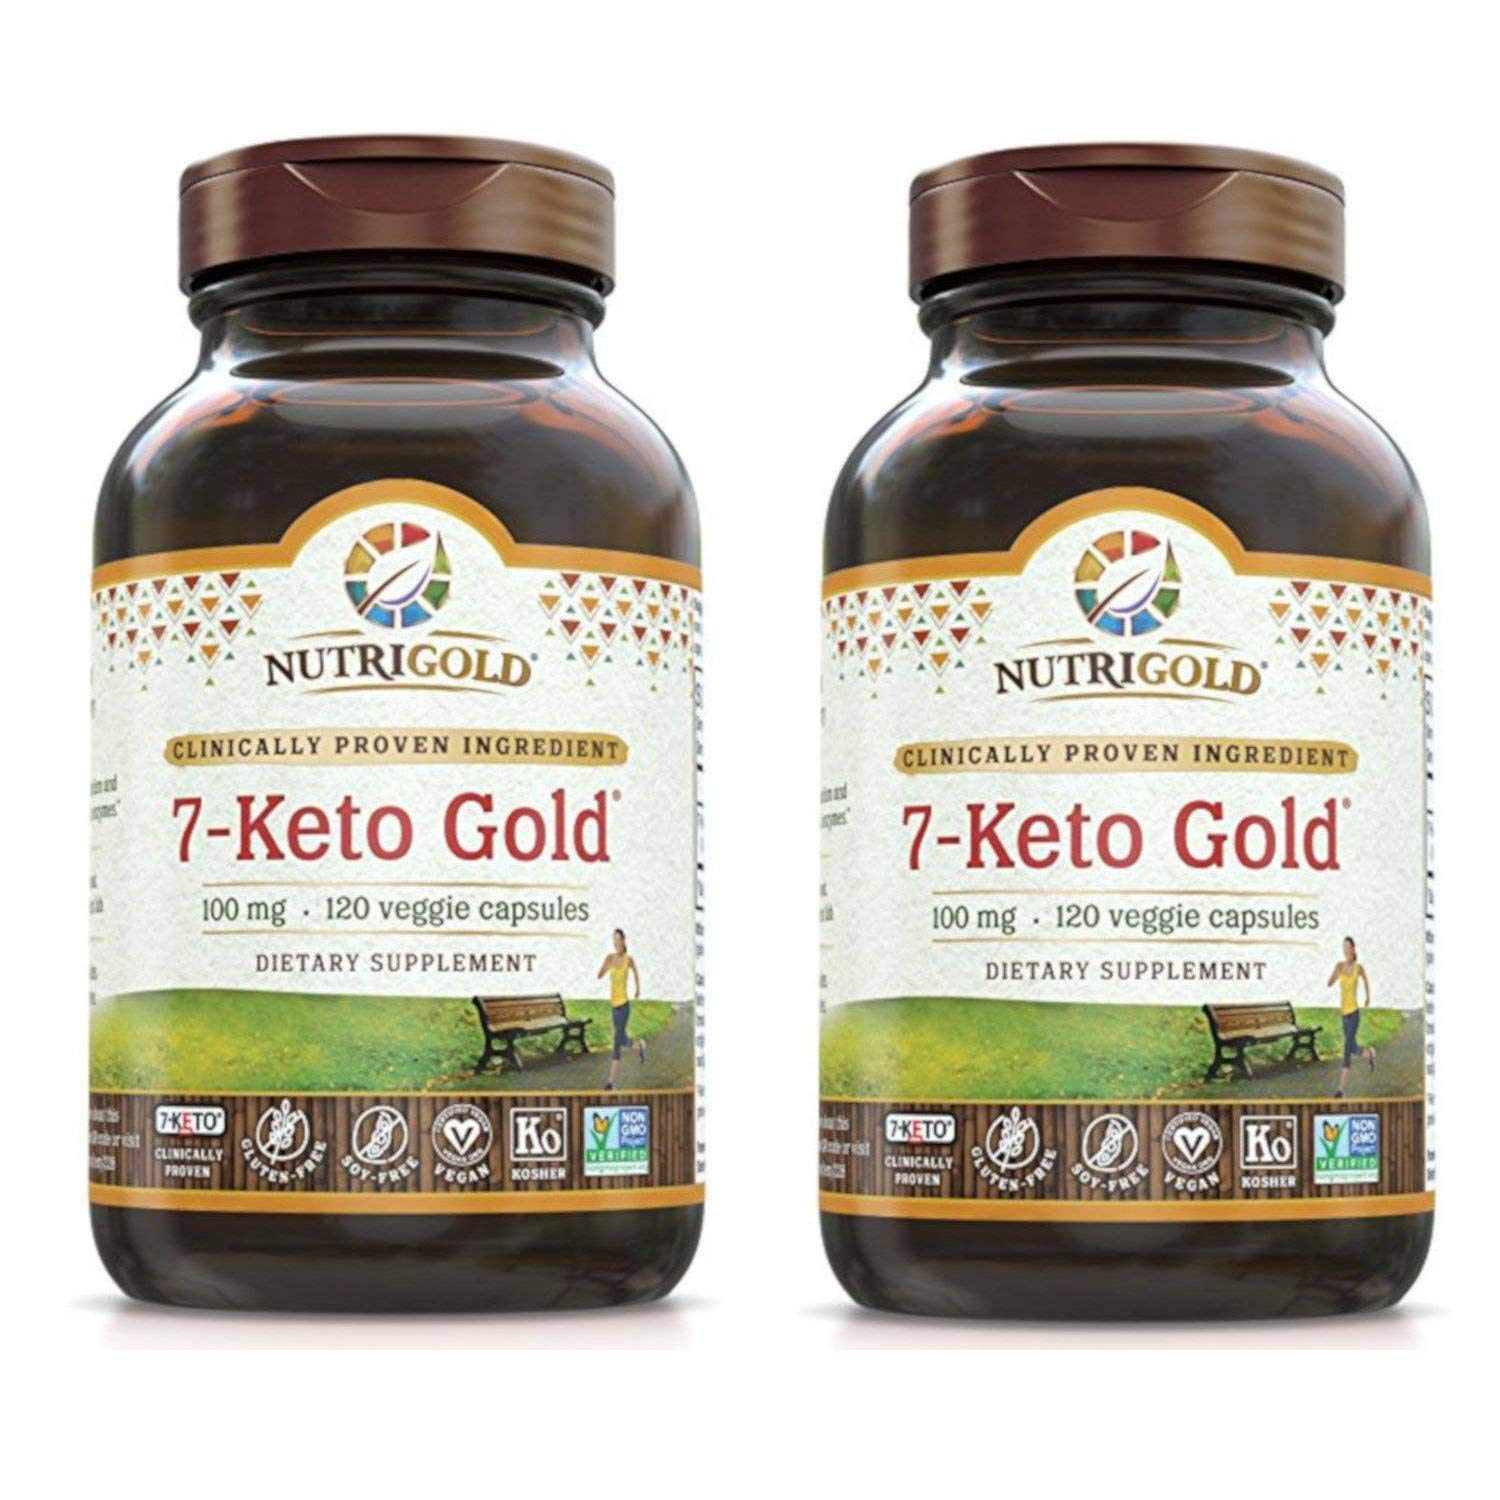 NutriGold 7-Keto Gold for Enhanced Metabolism and Healthy BMI (100 mg, 120 Veggie Capsules) Pack of 2